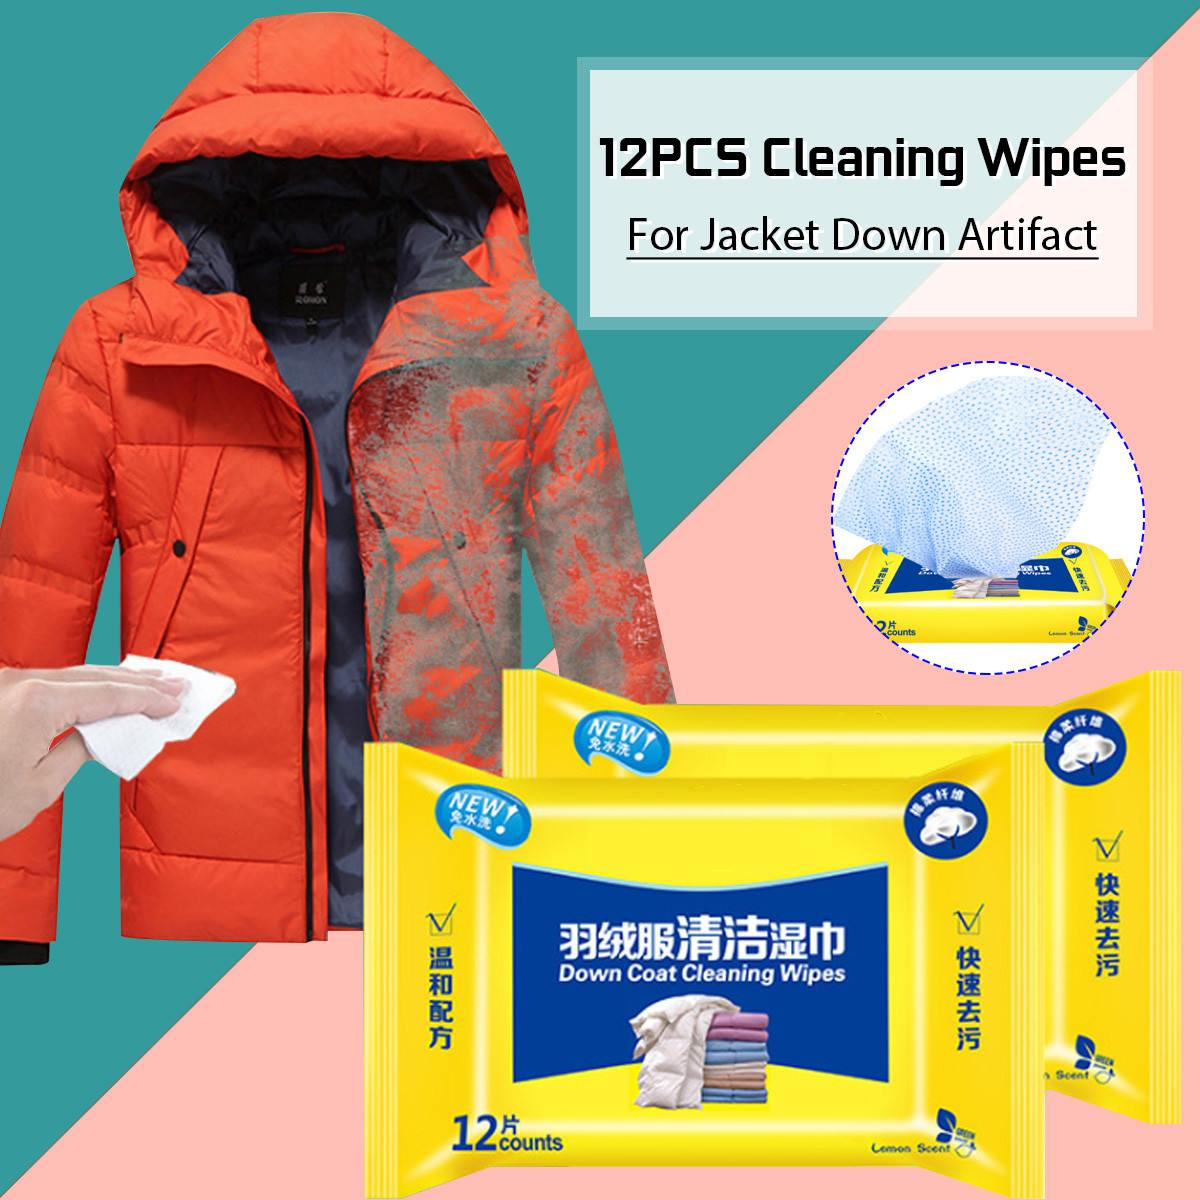 12pcs Down Jacket Cleaning Wipes Artifact Wet Wipe Handbags Disposable Disinfection Swap Pad Travel Portable Cleaning Care